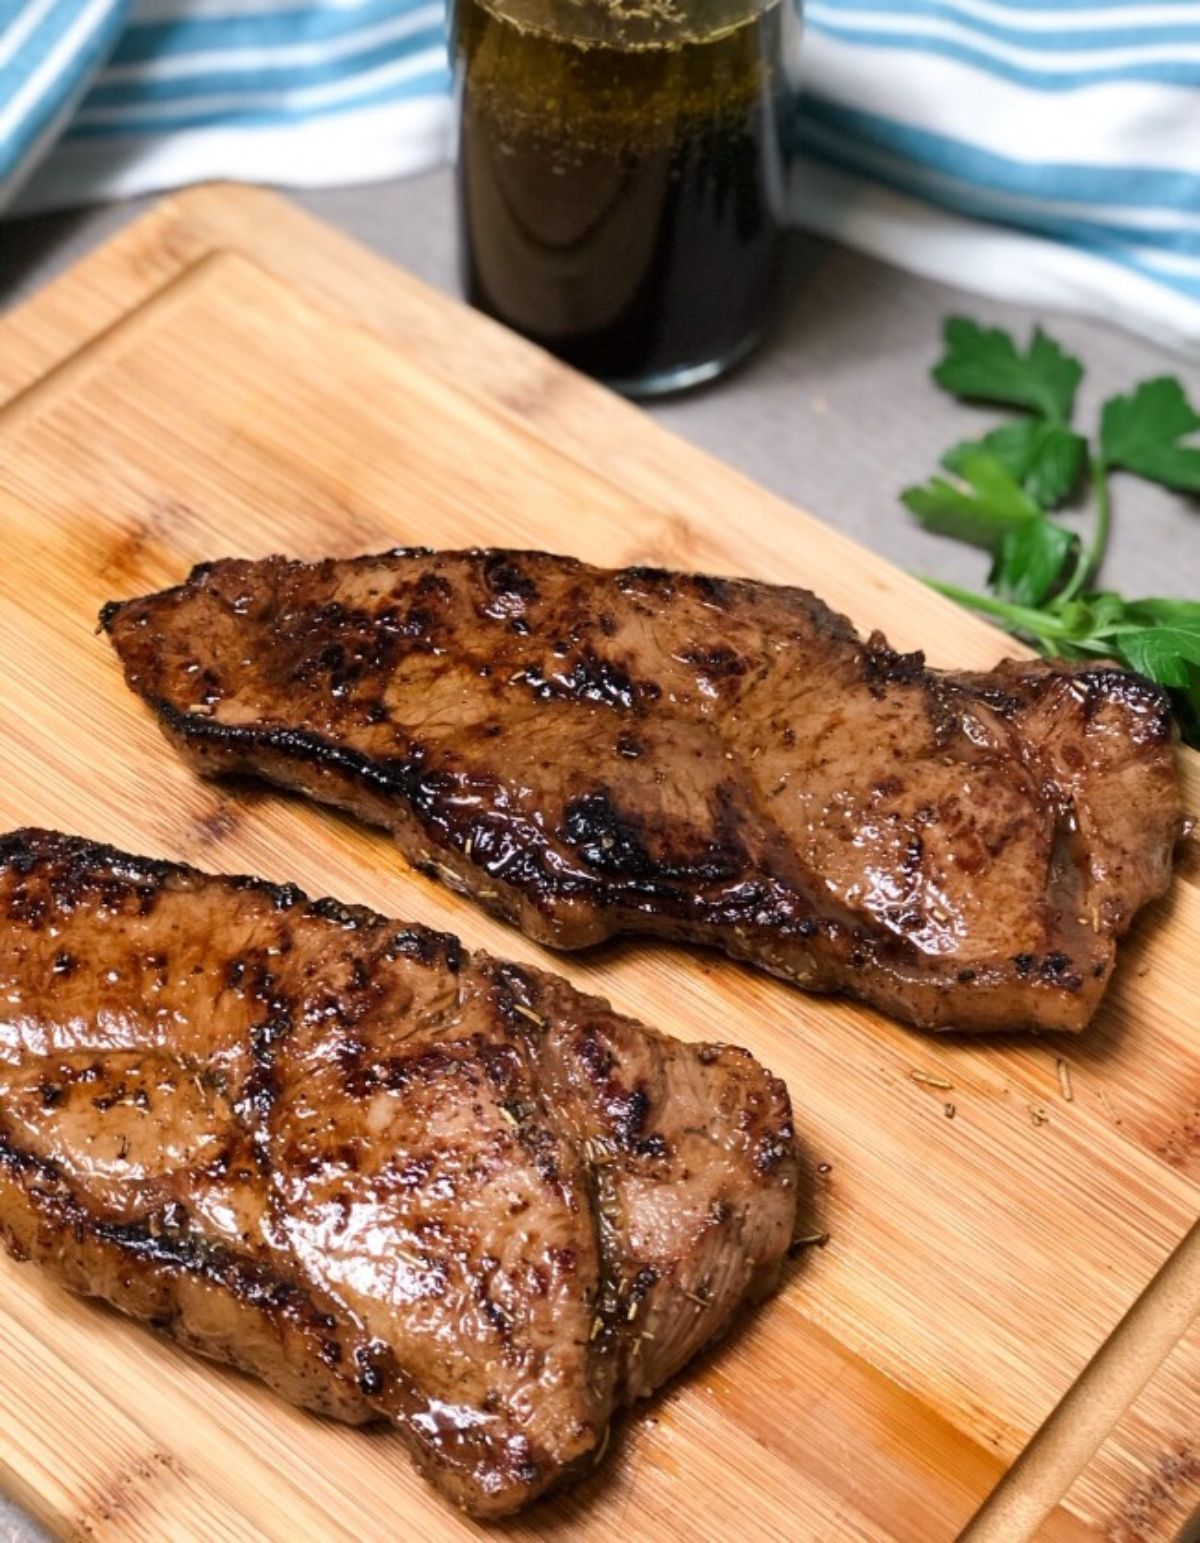 A wooden chopping board is on a table in front of a full glass and some herbs. On the board are 2 cooked flank steaks